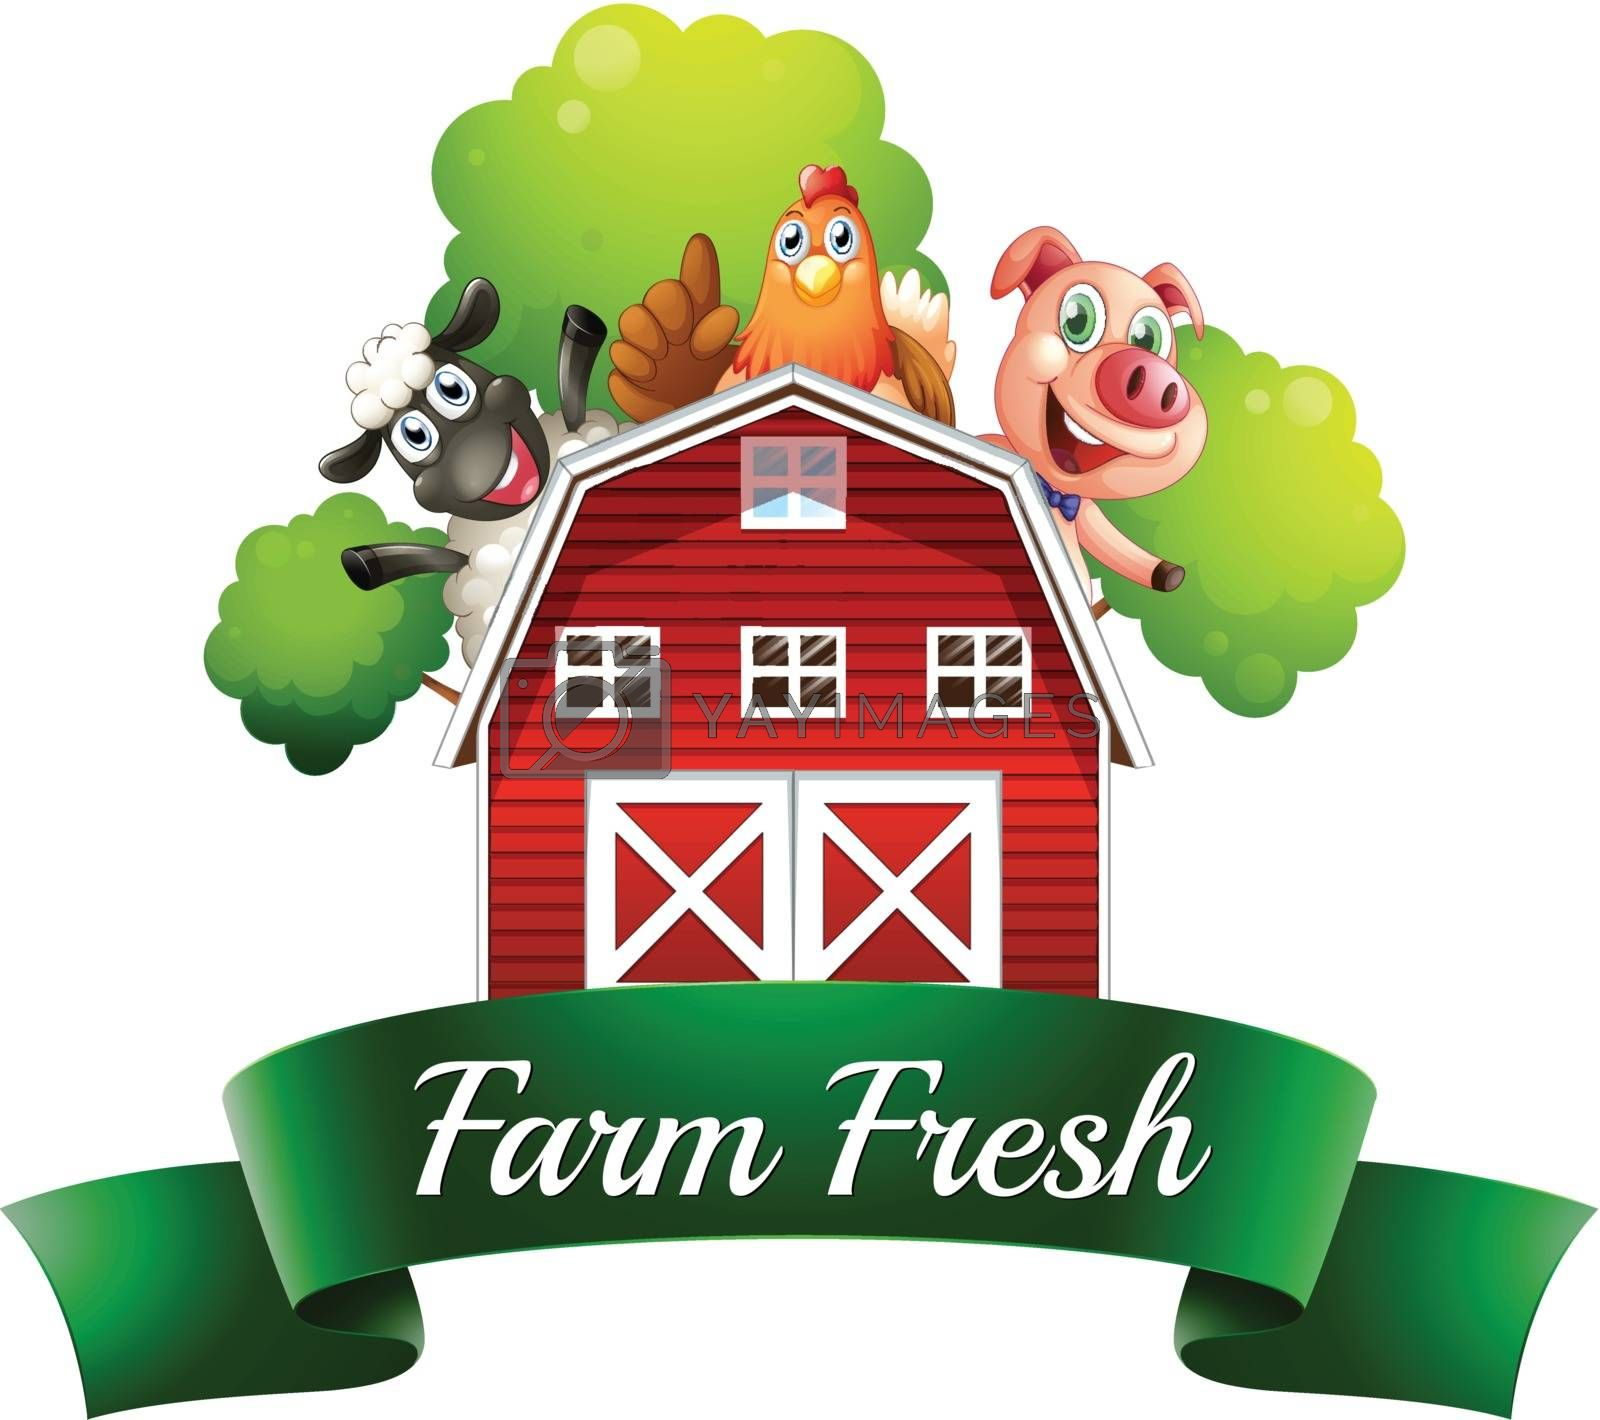 Illustration of a farm fresh label with a farmhouse and farm animals on a white background